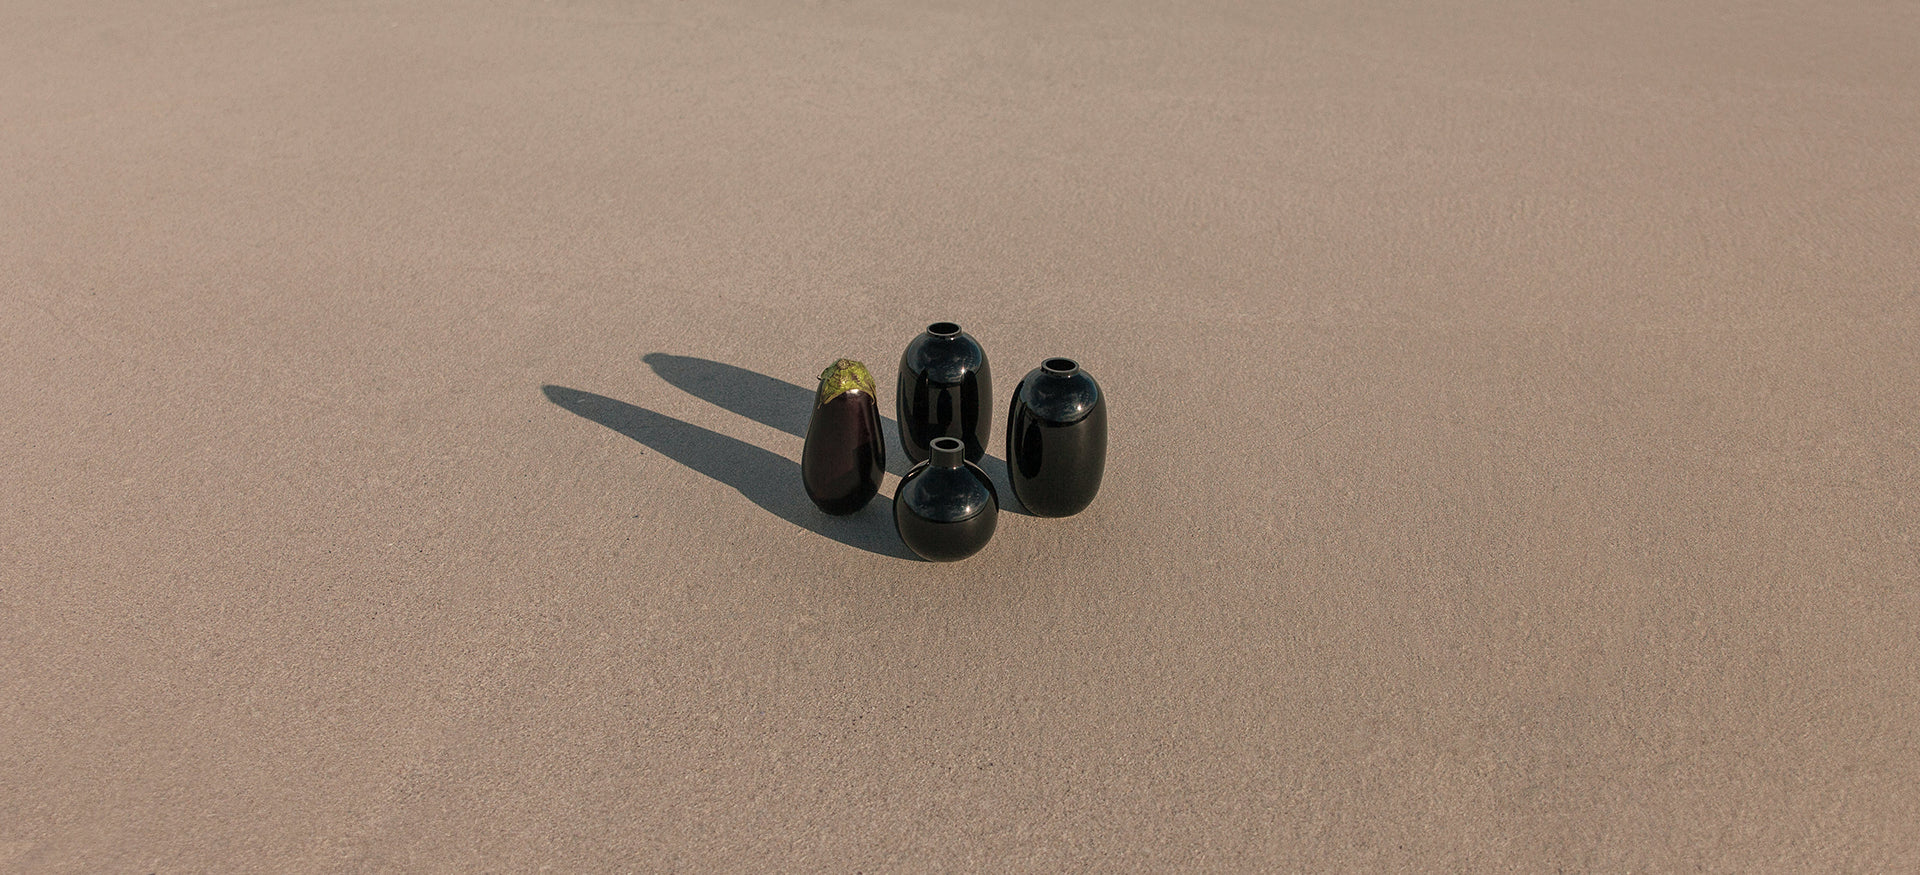 Theodore Afrika - Still Symmetry 03 - Image of various black vases and an eggplant on a beach.